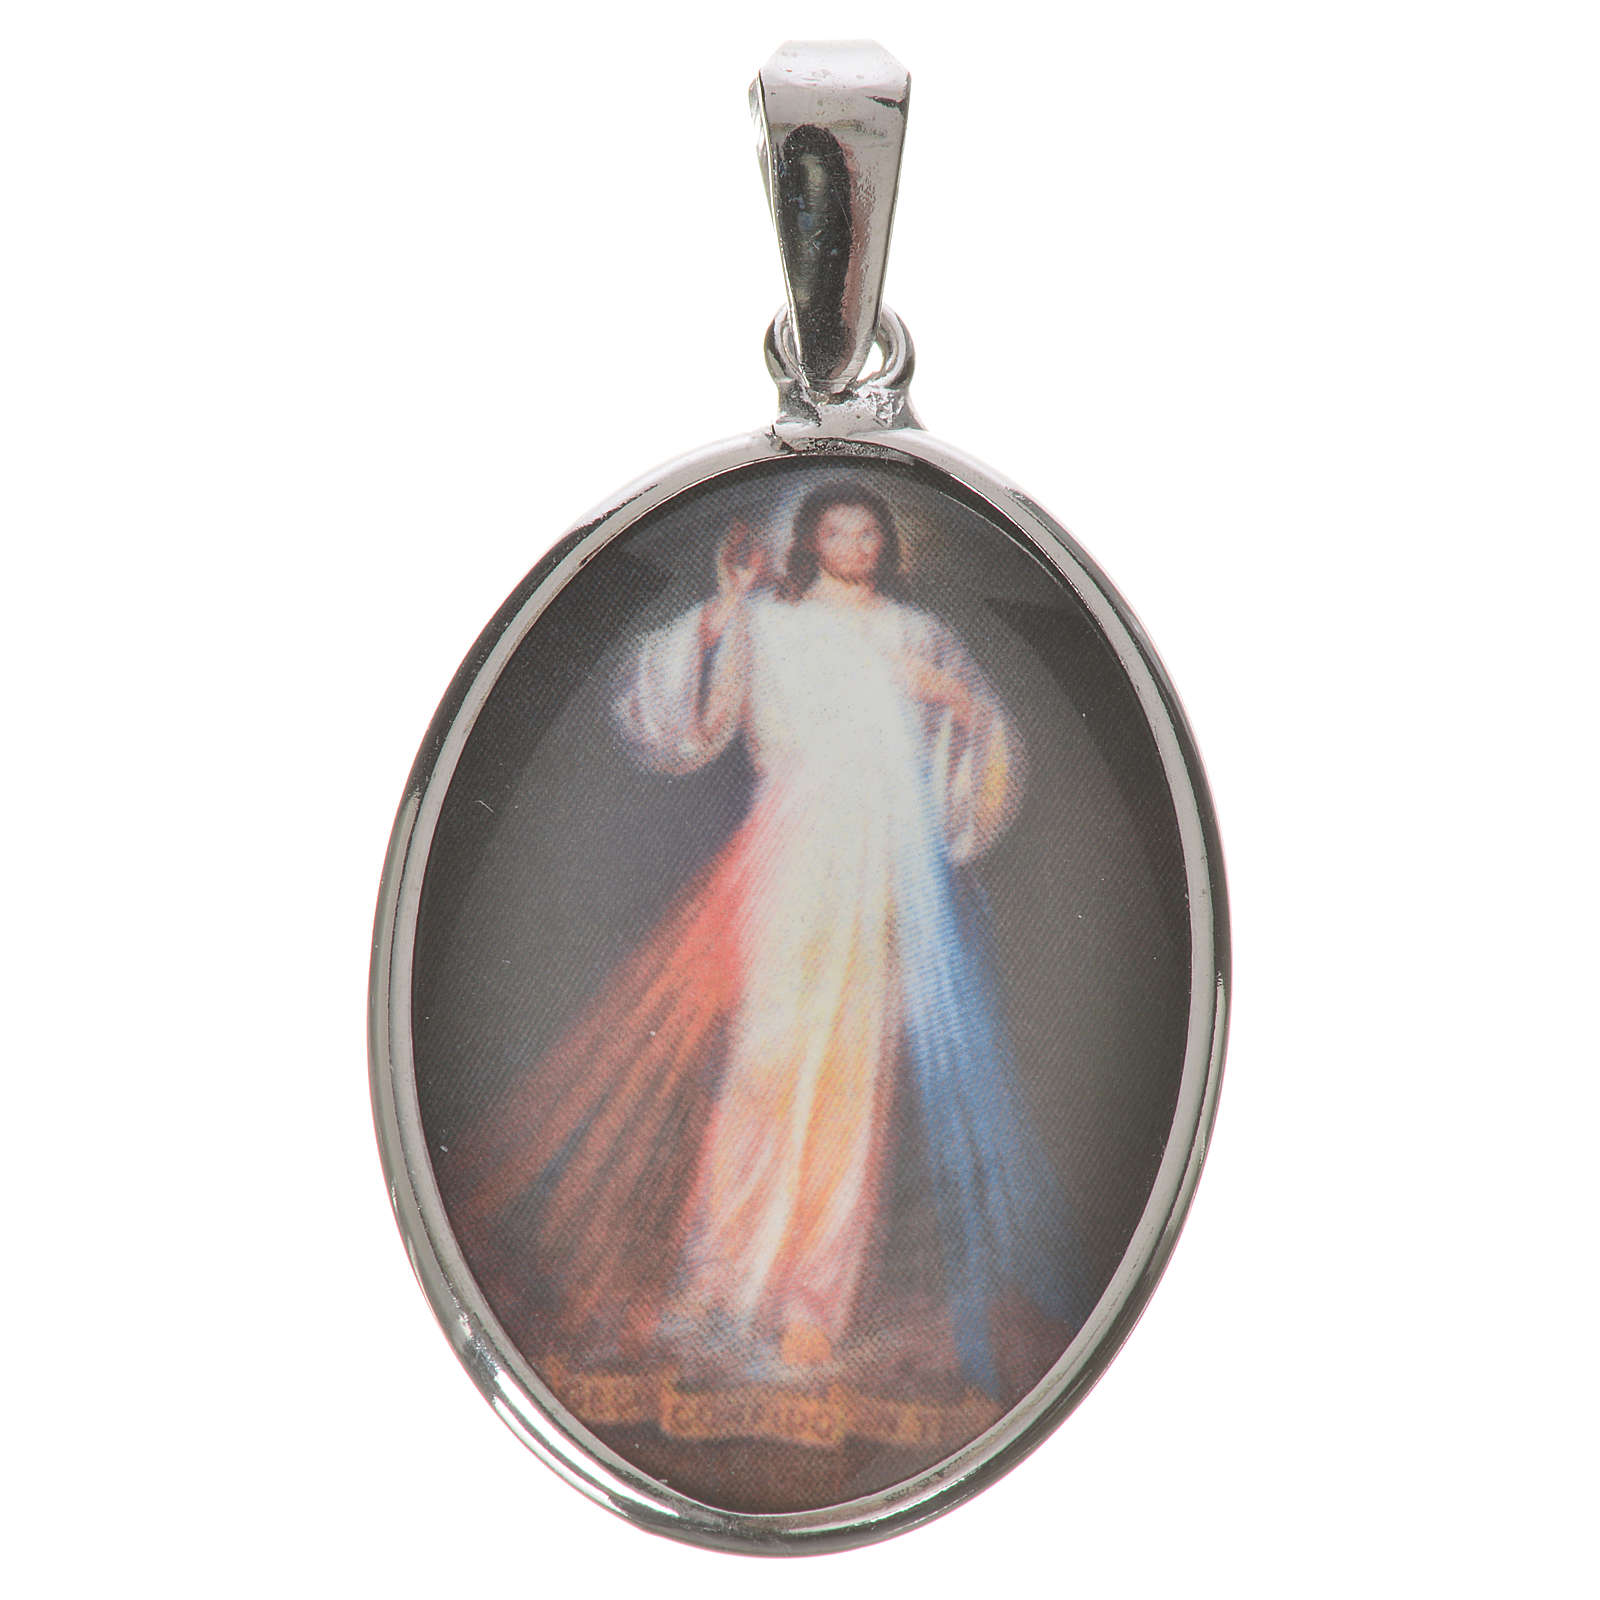 Oval medal in silver, 27mm Merciful Jesus 4